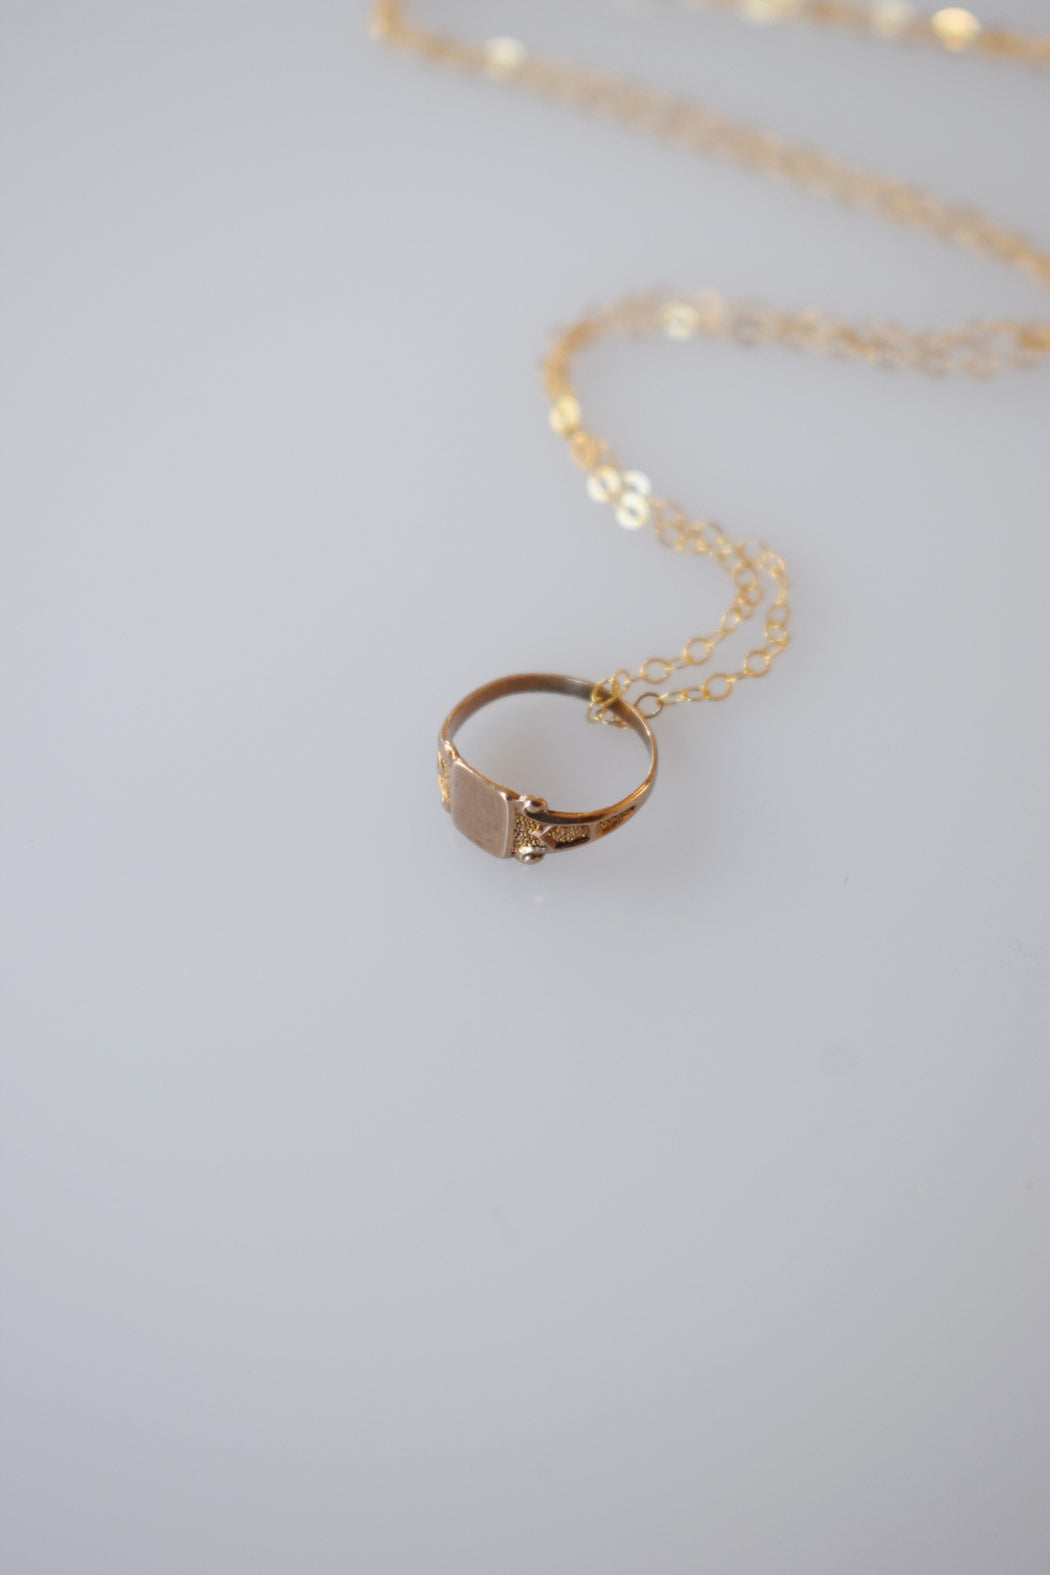 Victorian 10kt Rose Gold Mini Signet Ring/Charm